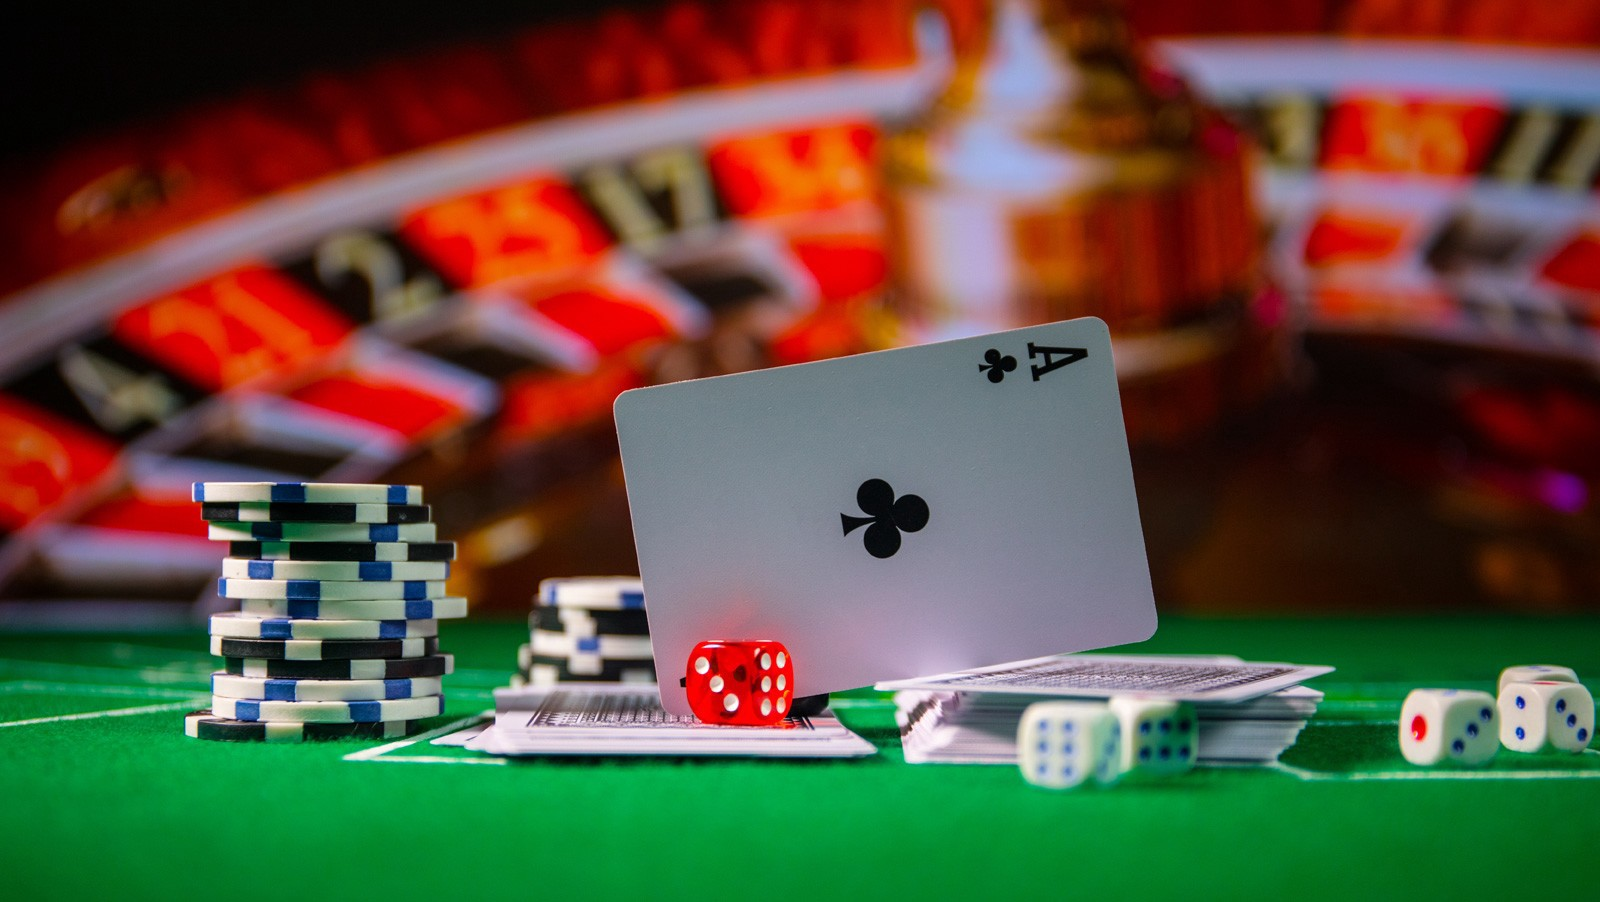 Make Money With Domino Qiu Qiu People Often Choose Betting As A By Benheighway Medium